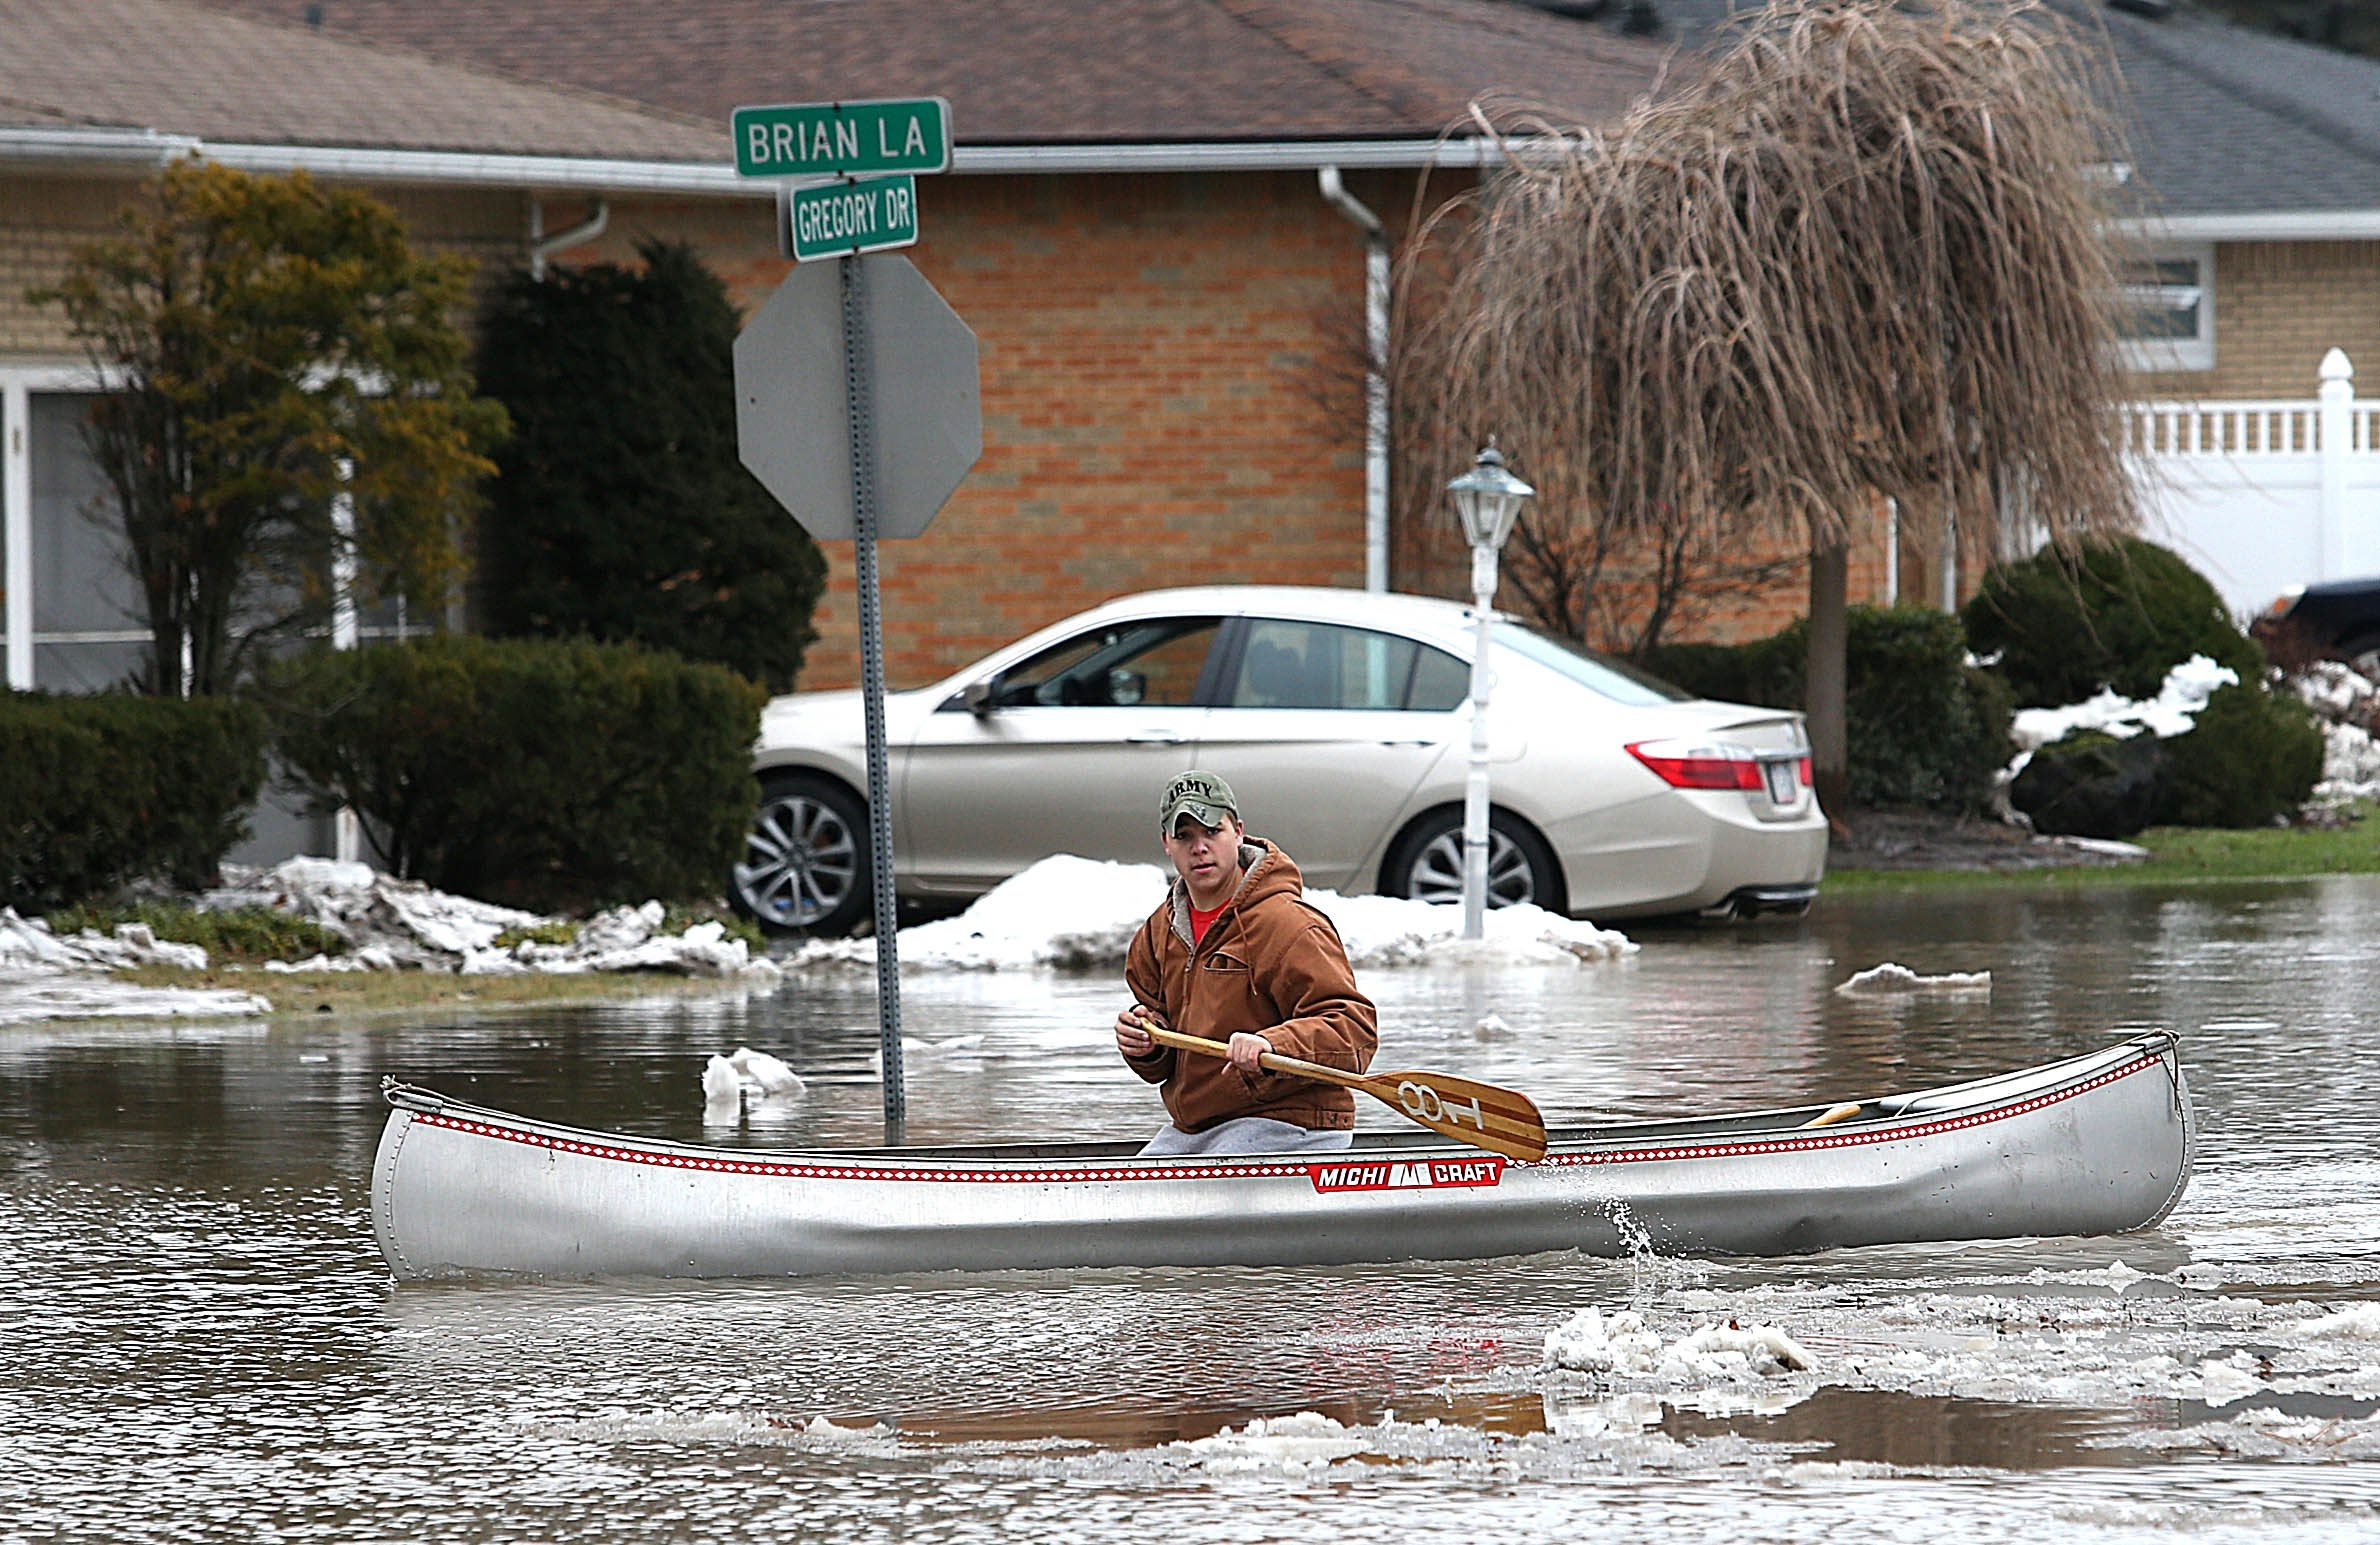 Ben Lang, of Elma, had to use a canoe to check on his grandmother after flooding devastated her neighborhood in West Seneca. (Robert Kirkham/Buffalo News)